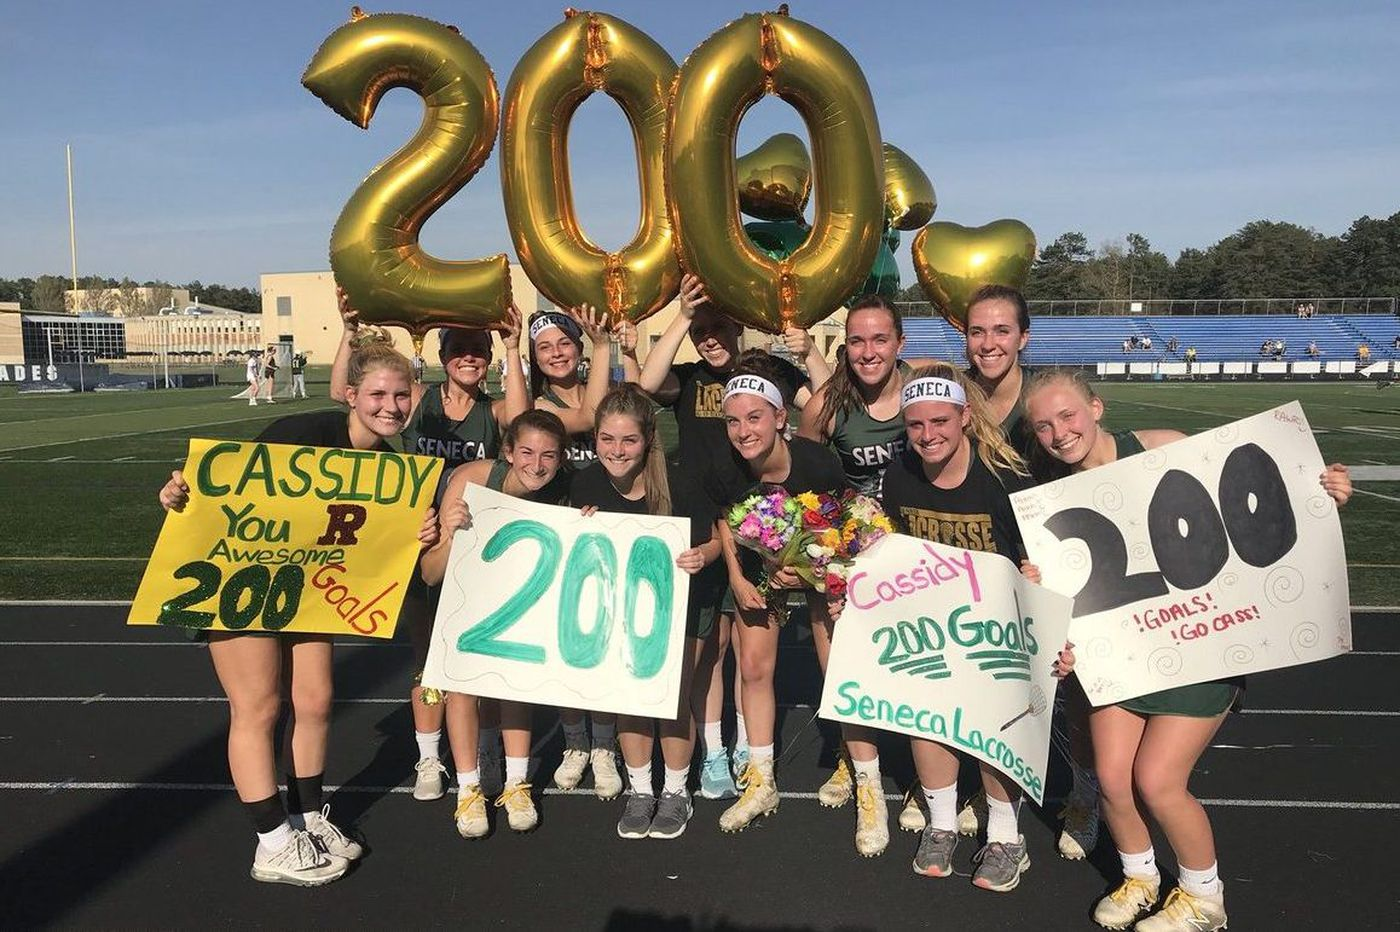 Wednesday's South Jersey roundup: Cassidy Spillis nets 200th goal in Seneca's win